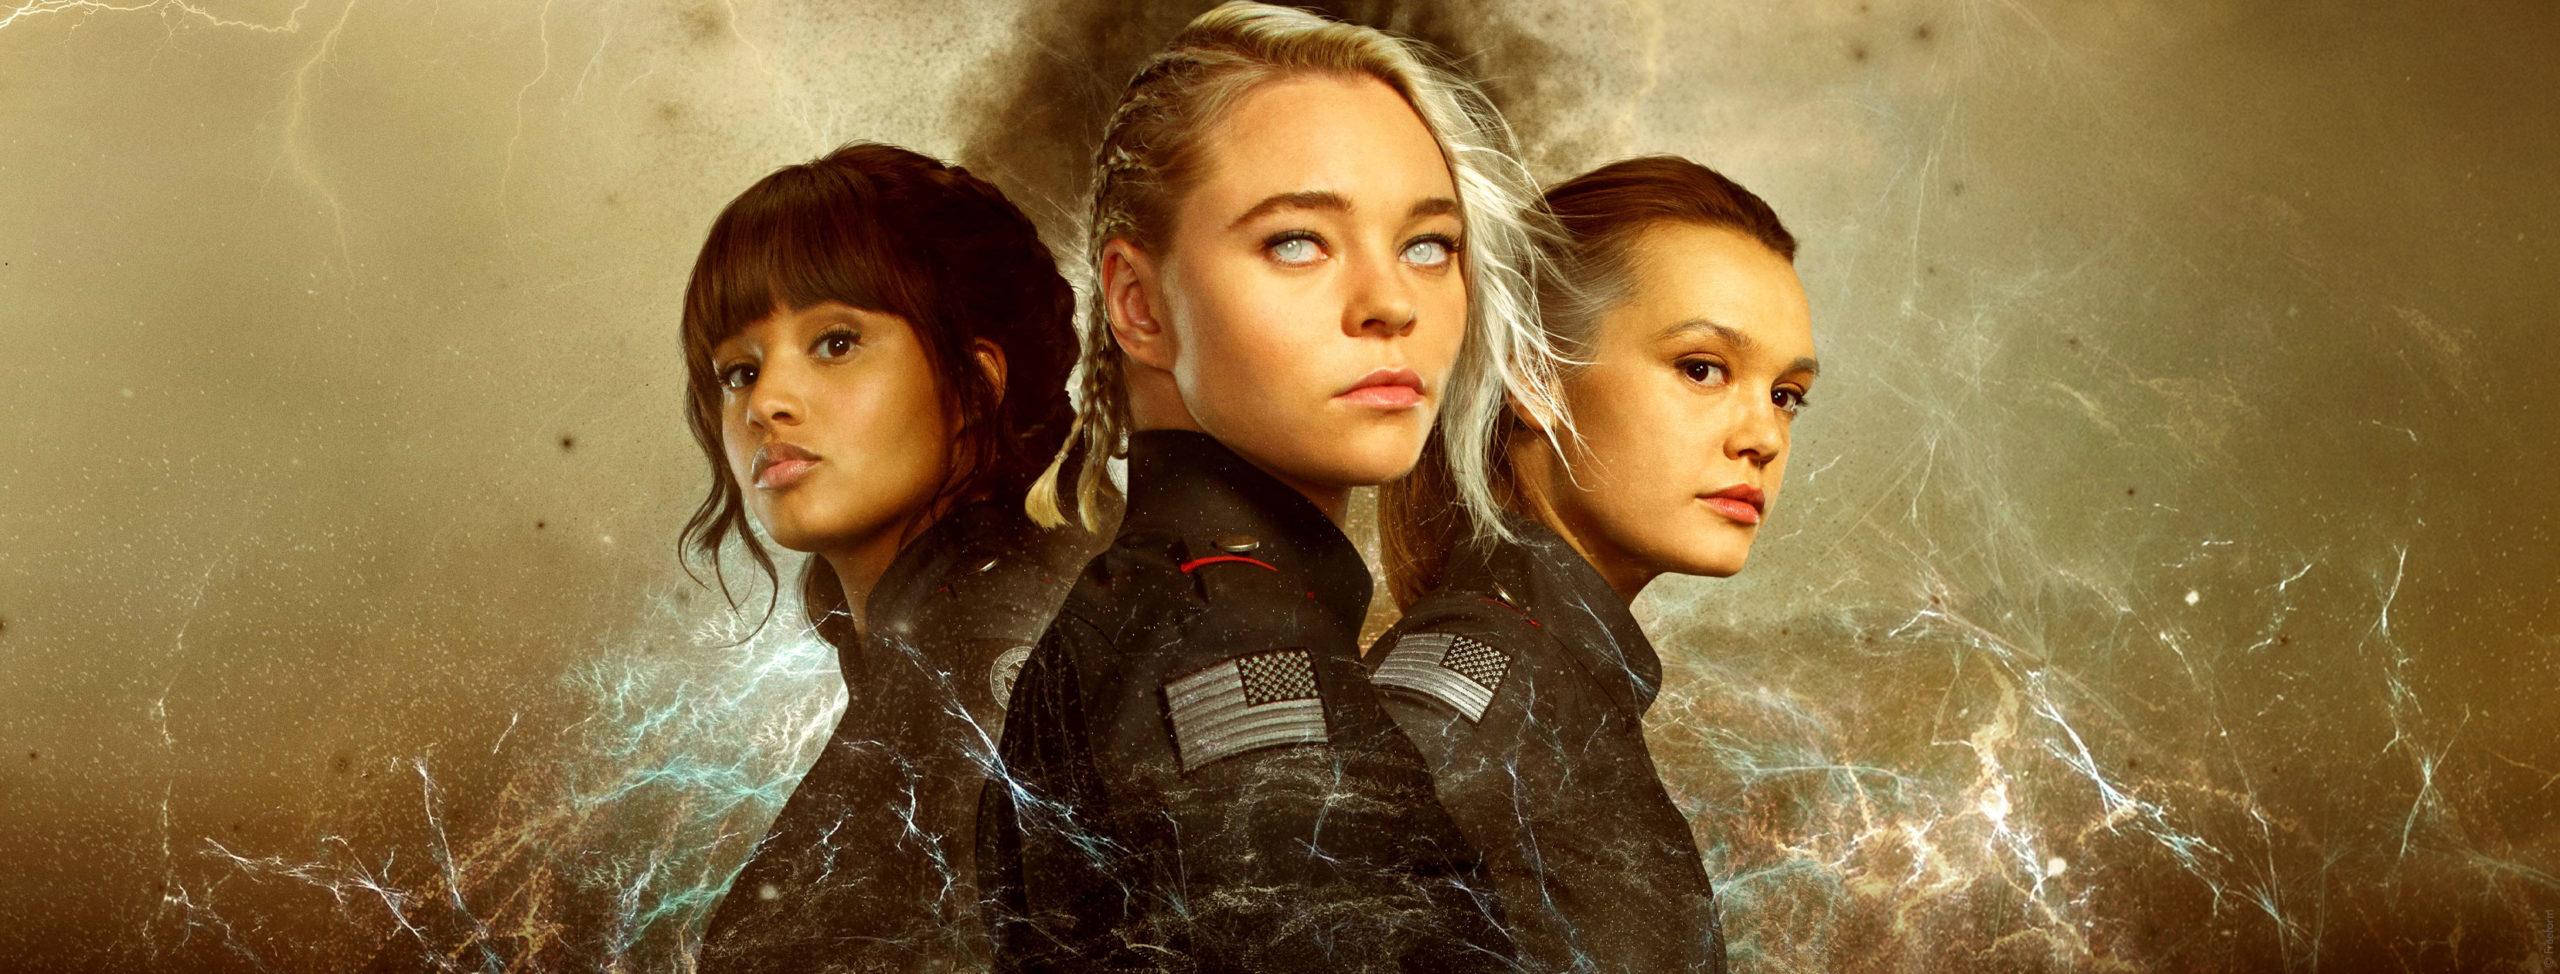 Motherland: Fort Salem with Taylor Hickson, Ashley Nicole Williams, and Jessica Sutton